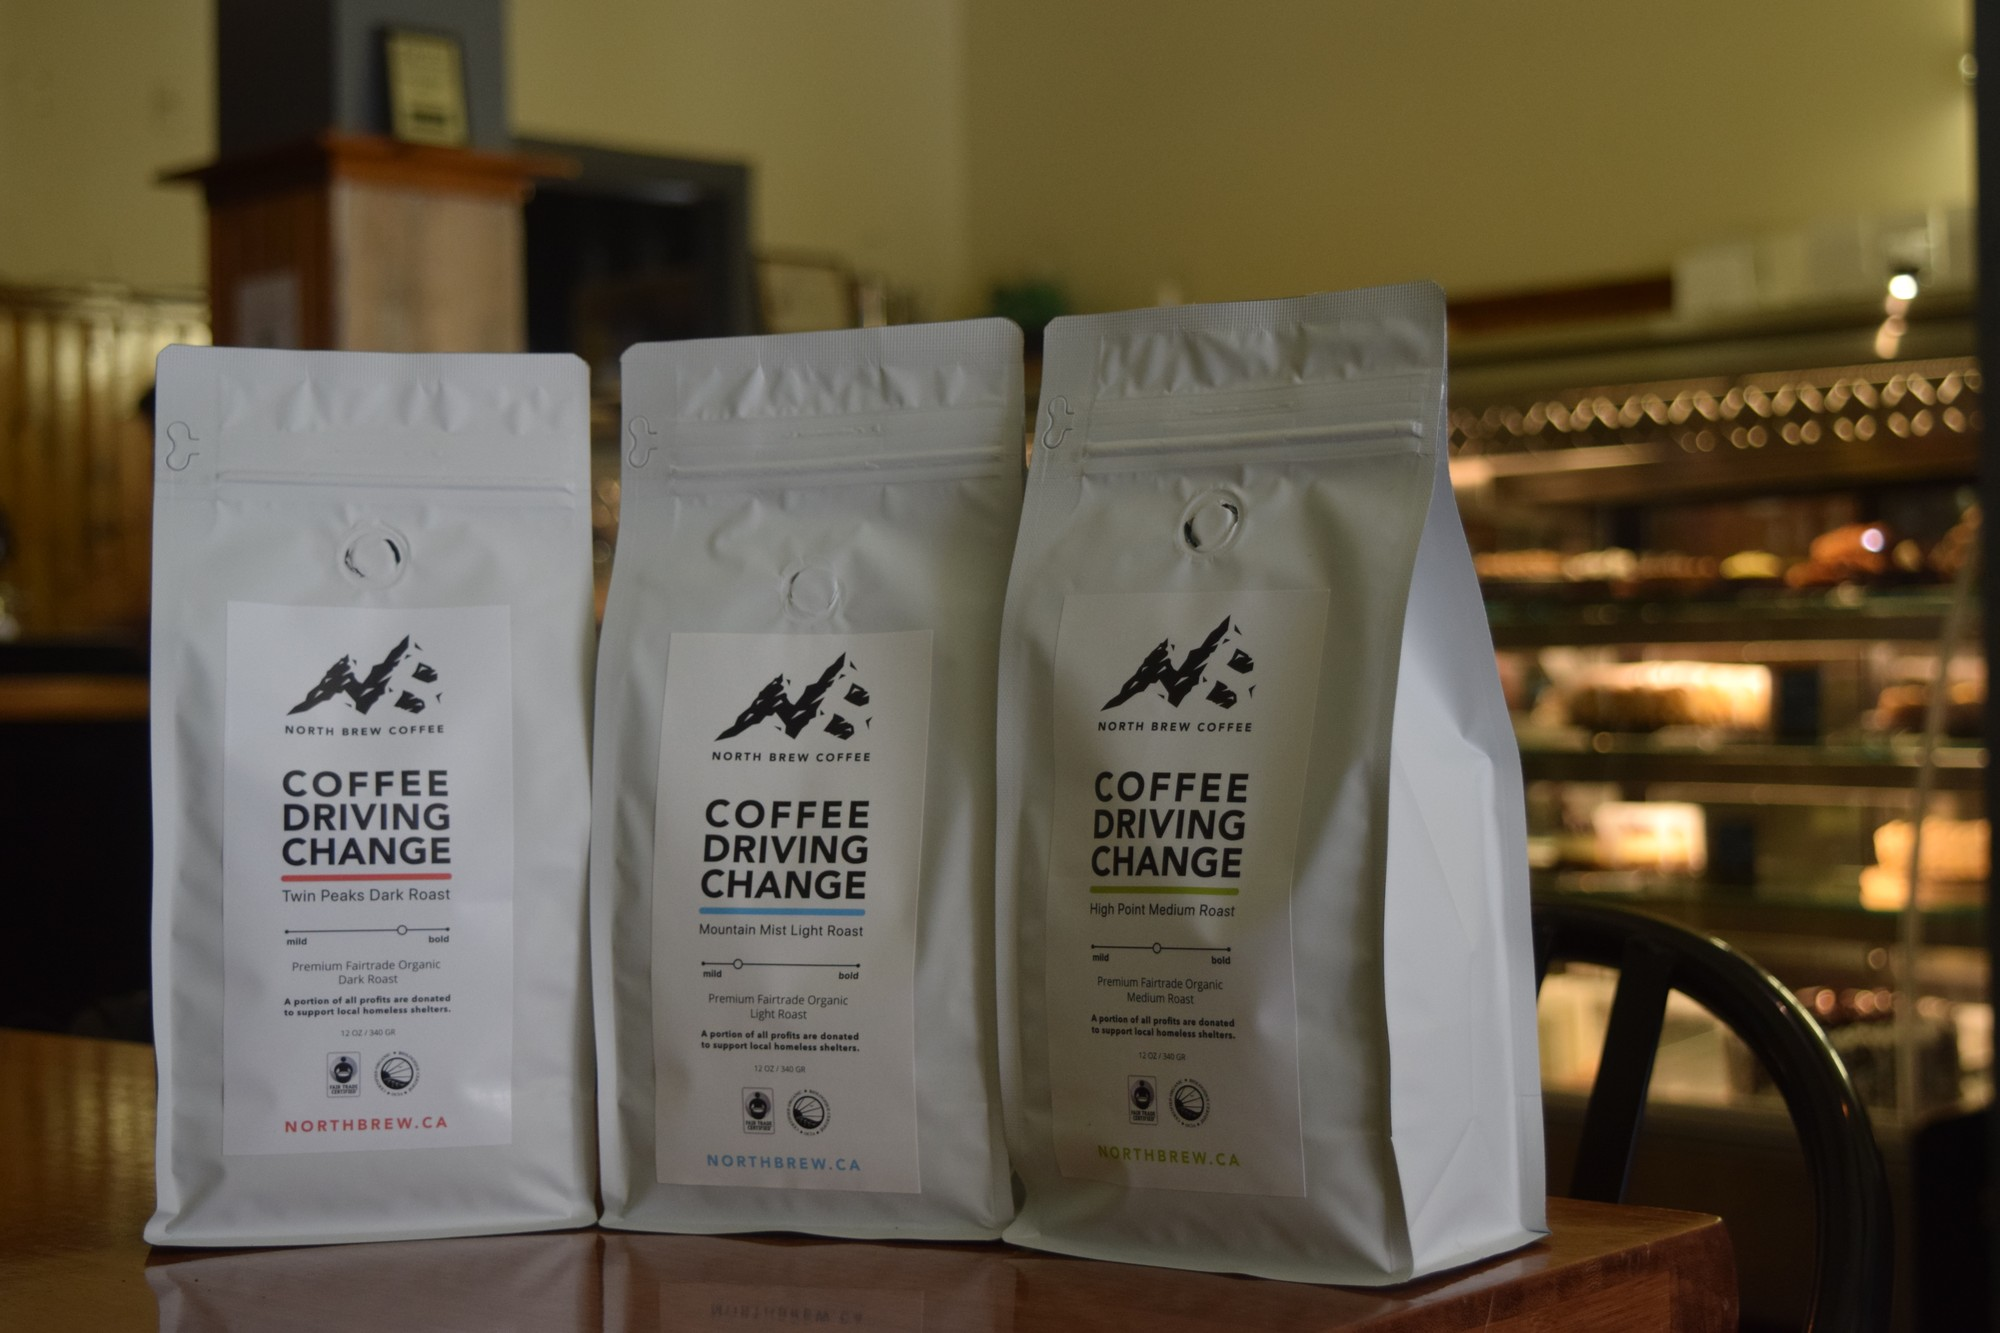 Rankin's North Brew Coffee, sold at Oh So Good Desserts & Coffeehouse in the Byward Market.